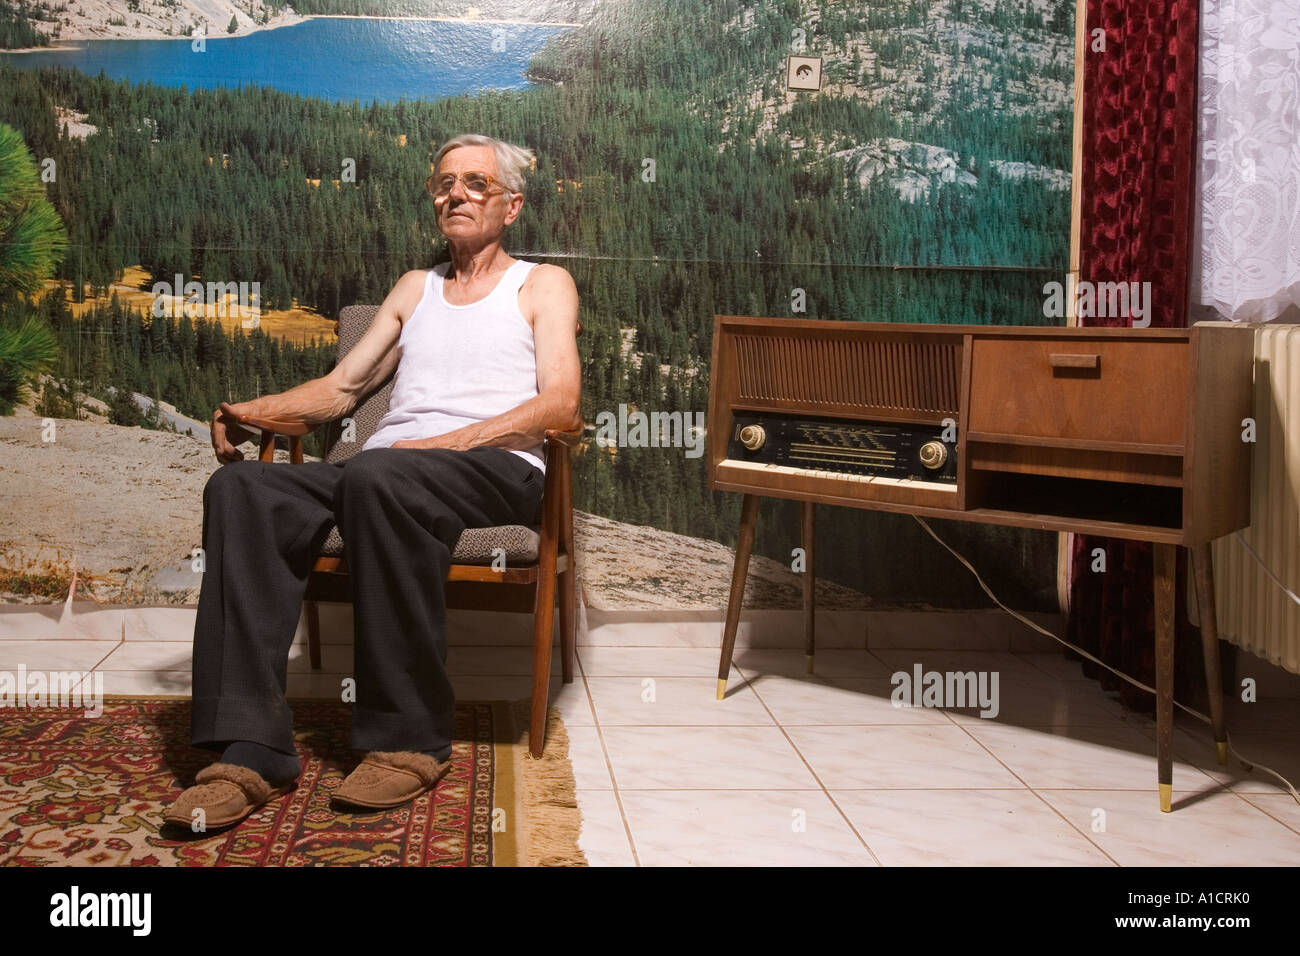 Old Man Sitting In Front Of House Stock Photos & Old Man Sitting In ...